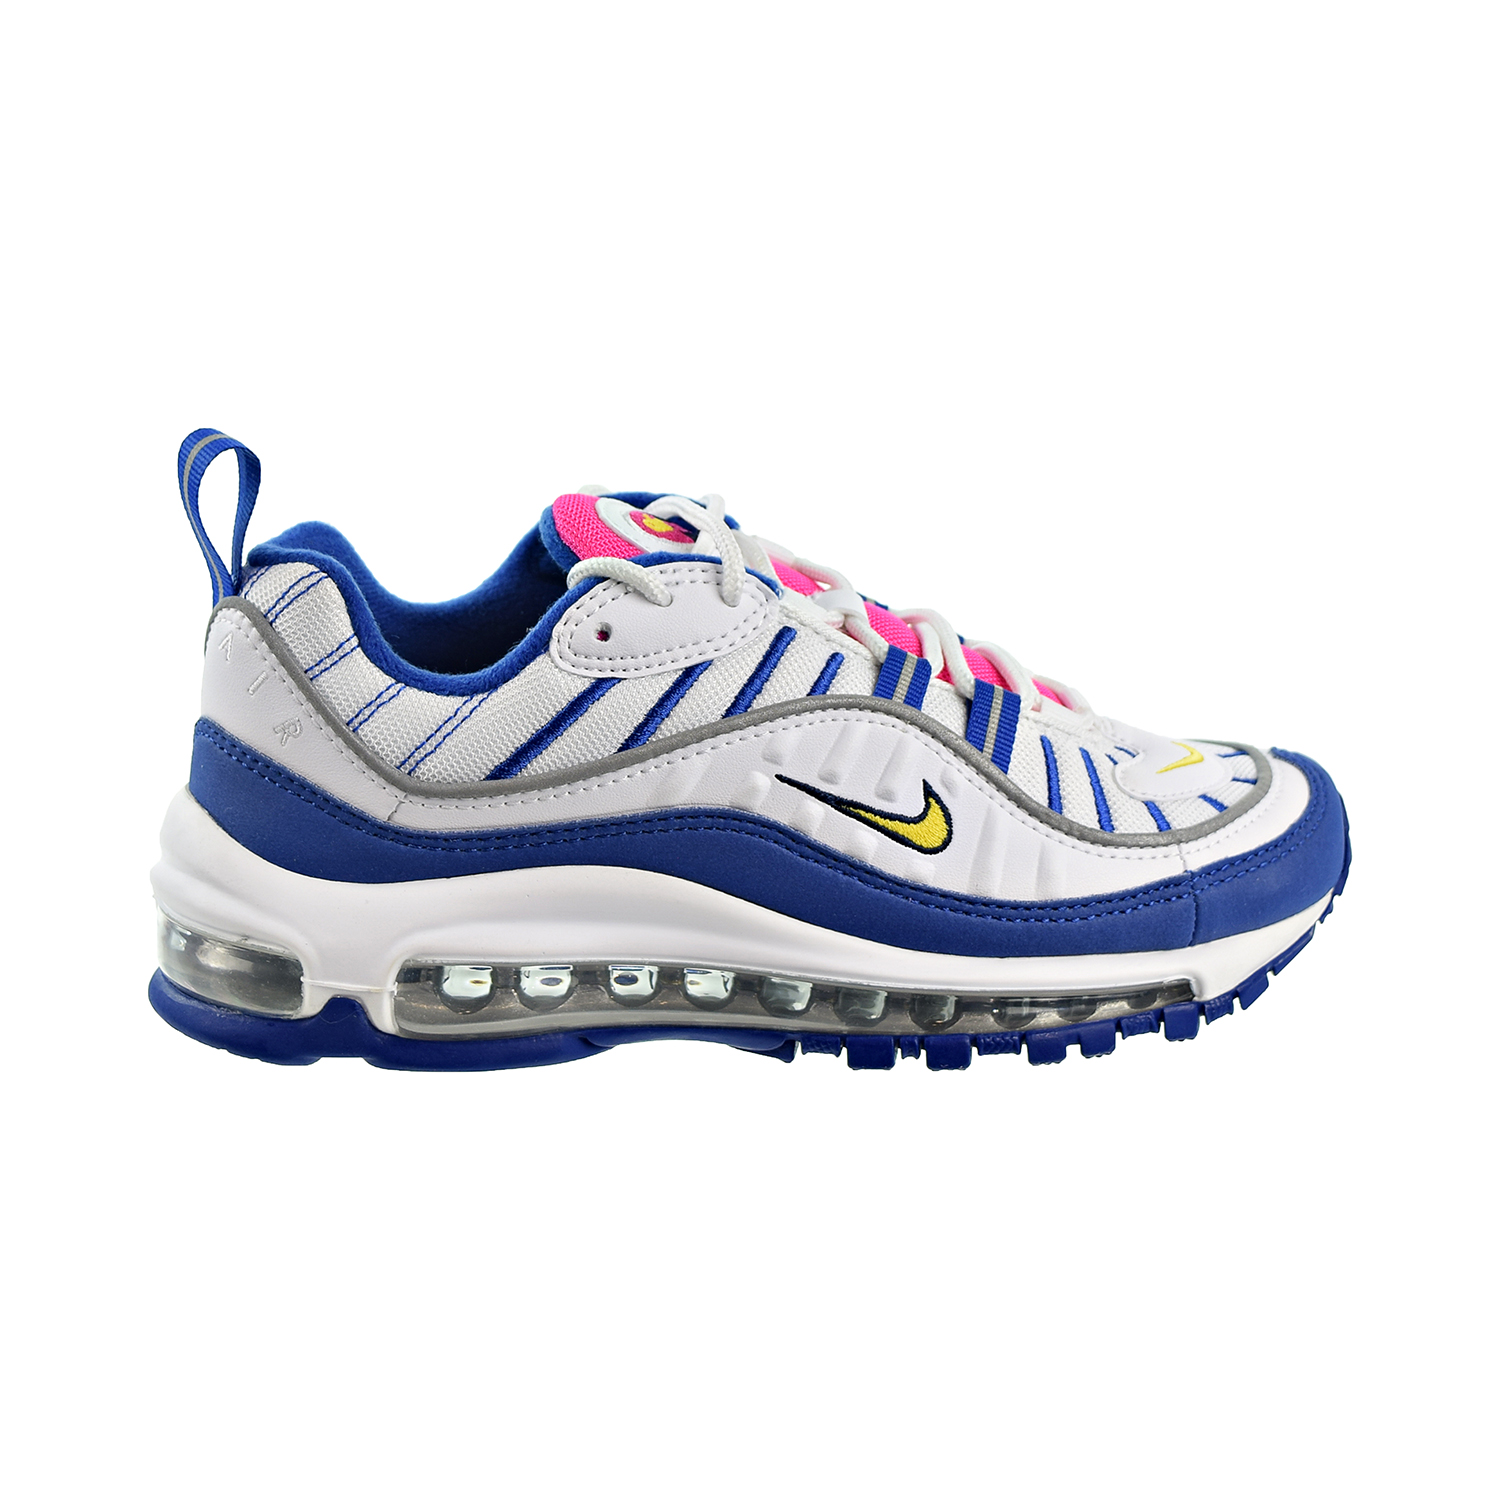 Details about Nike Air Max 98 (GS) Big Kids Shoes White Amarillo Indigo Force bv4872 101